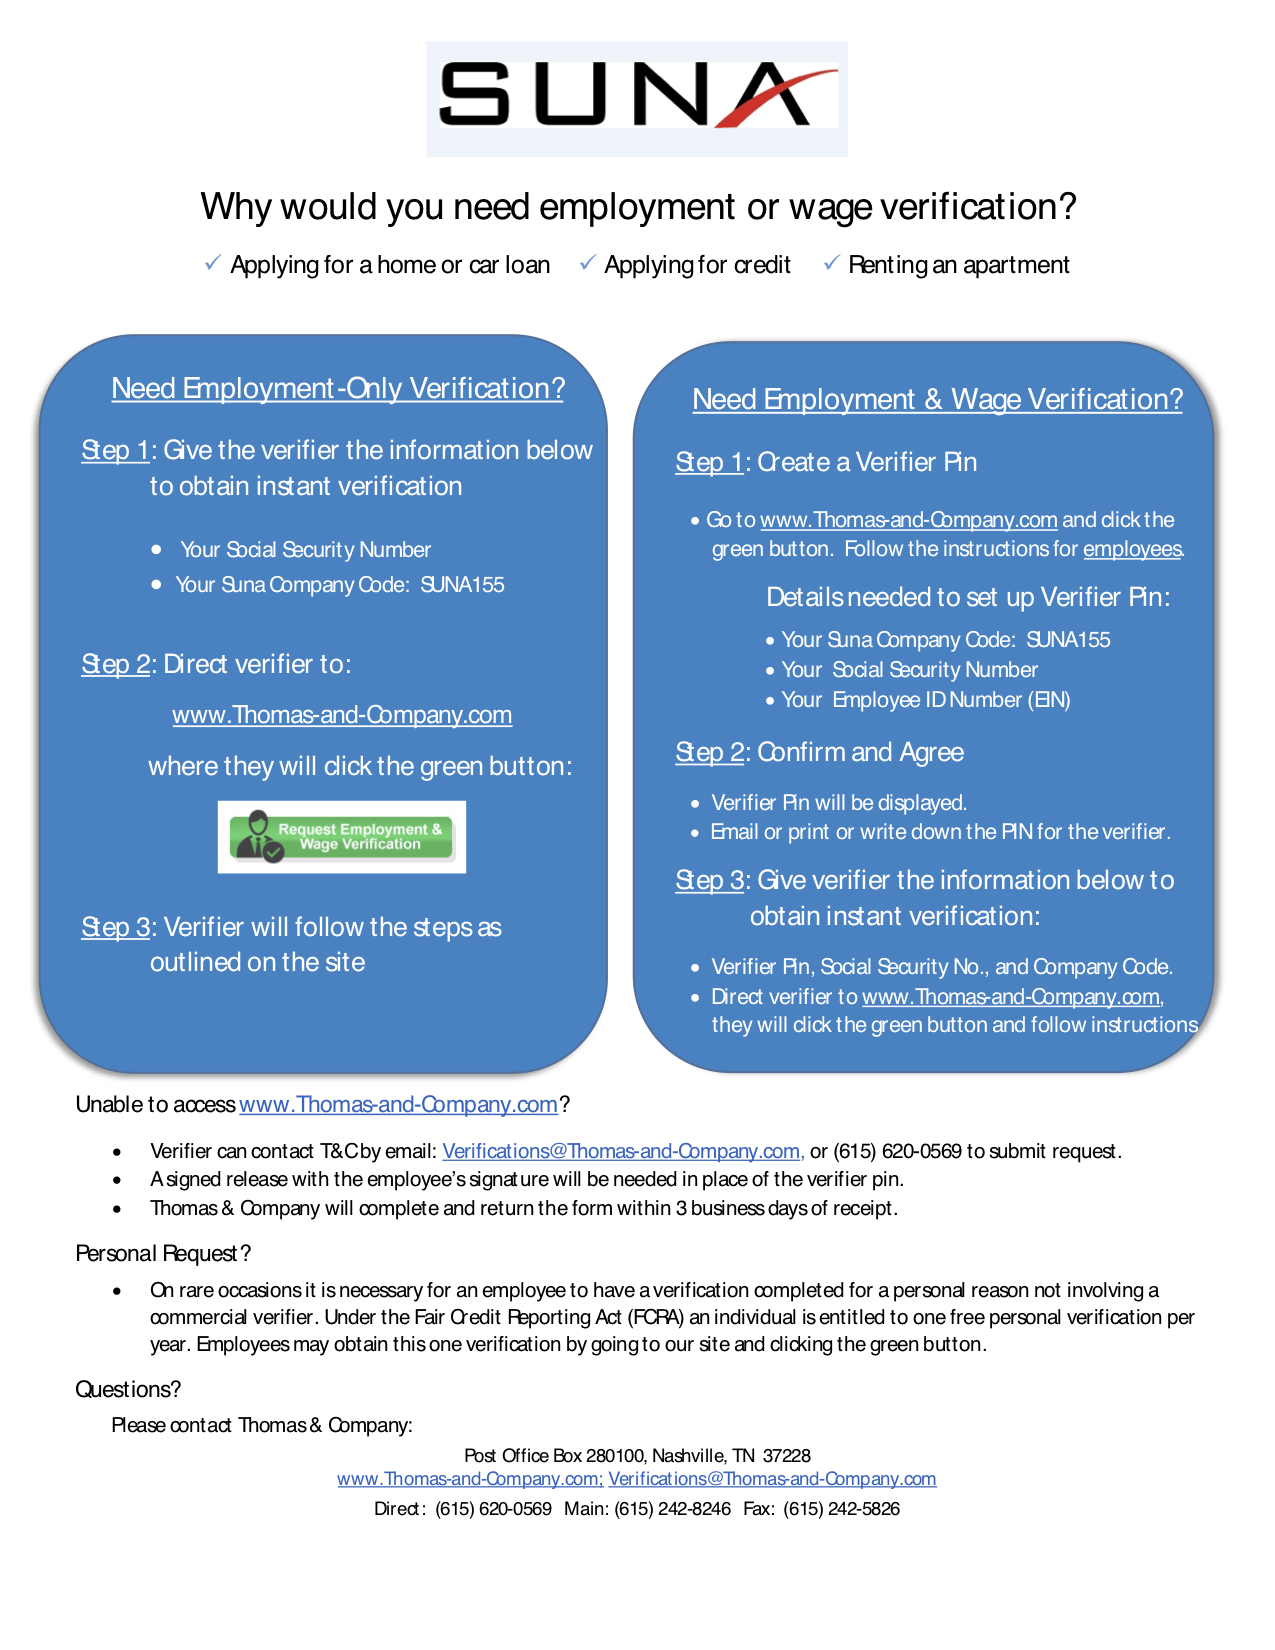 Employment or Wage Verification